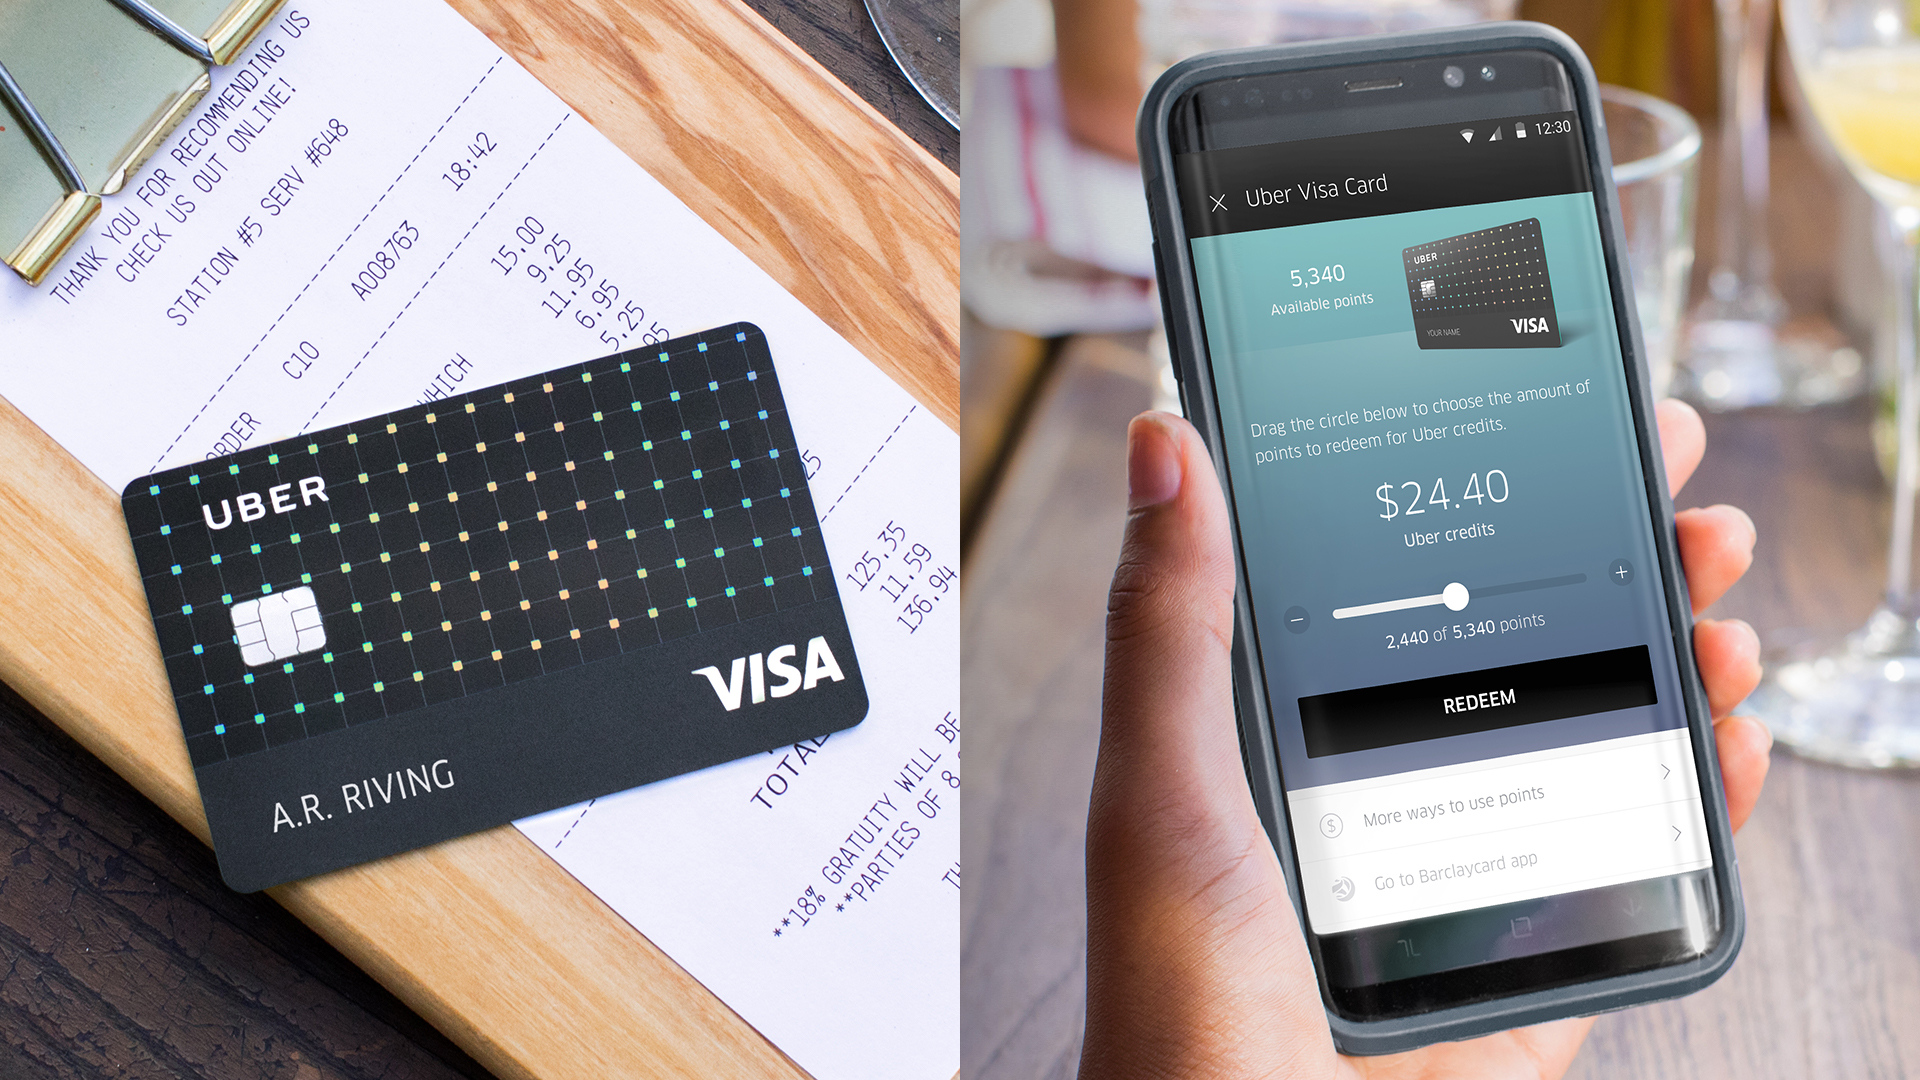 Uber introduces a credit card | TechCrunch